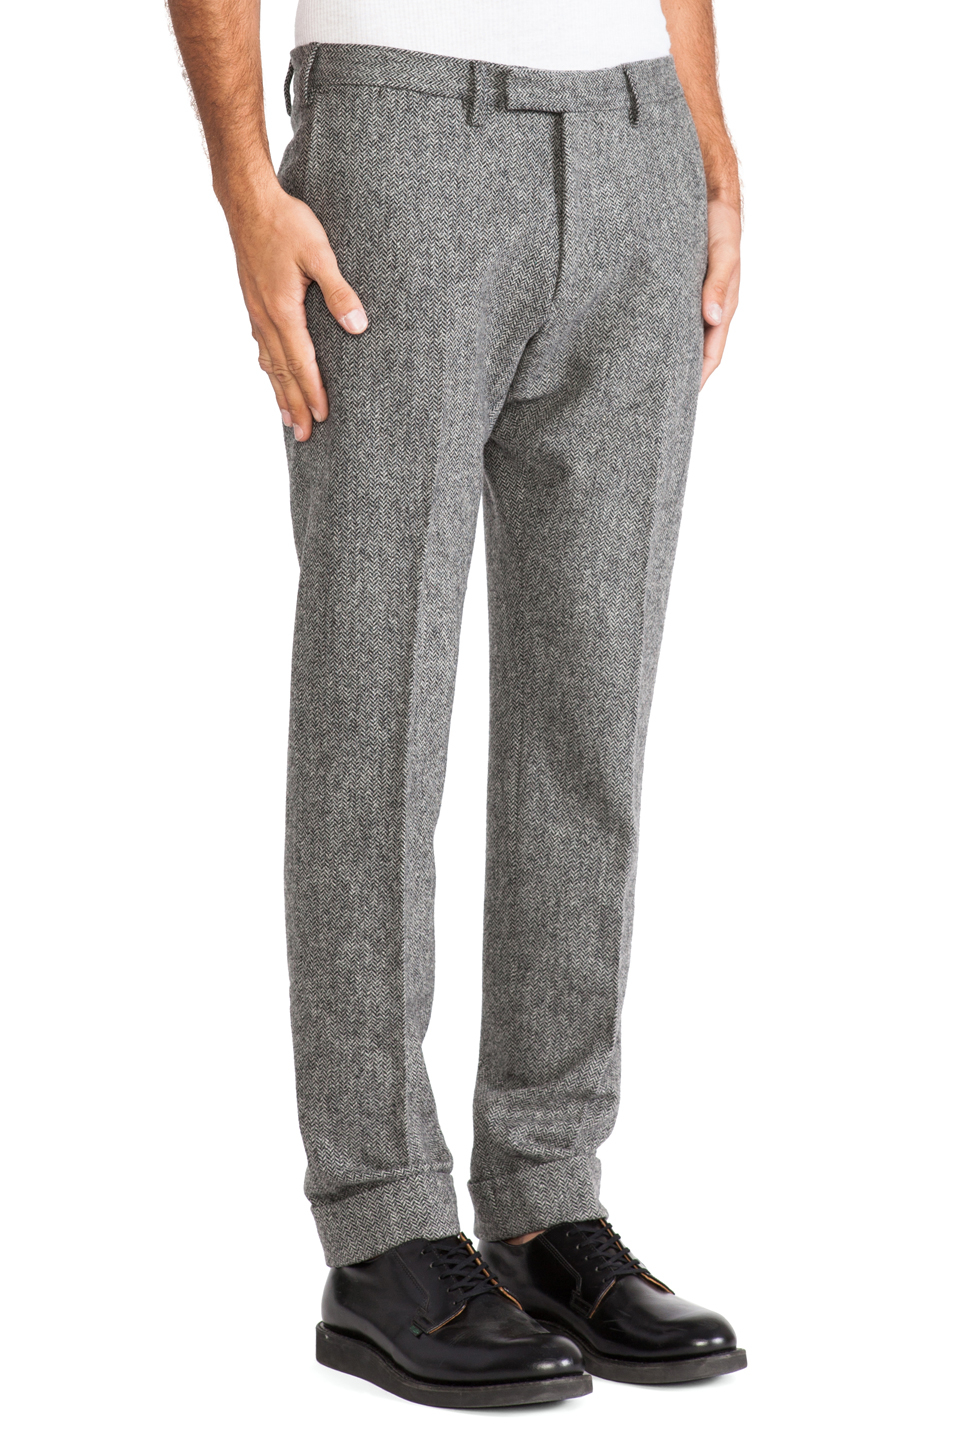 Gant Rugger Herringbone Smarty Pants In Gray For Men Lyst